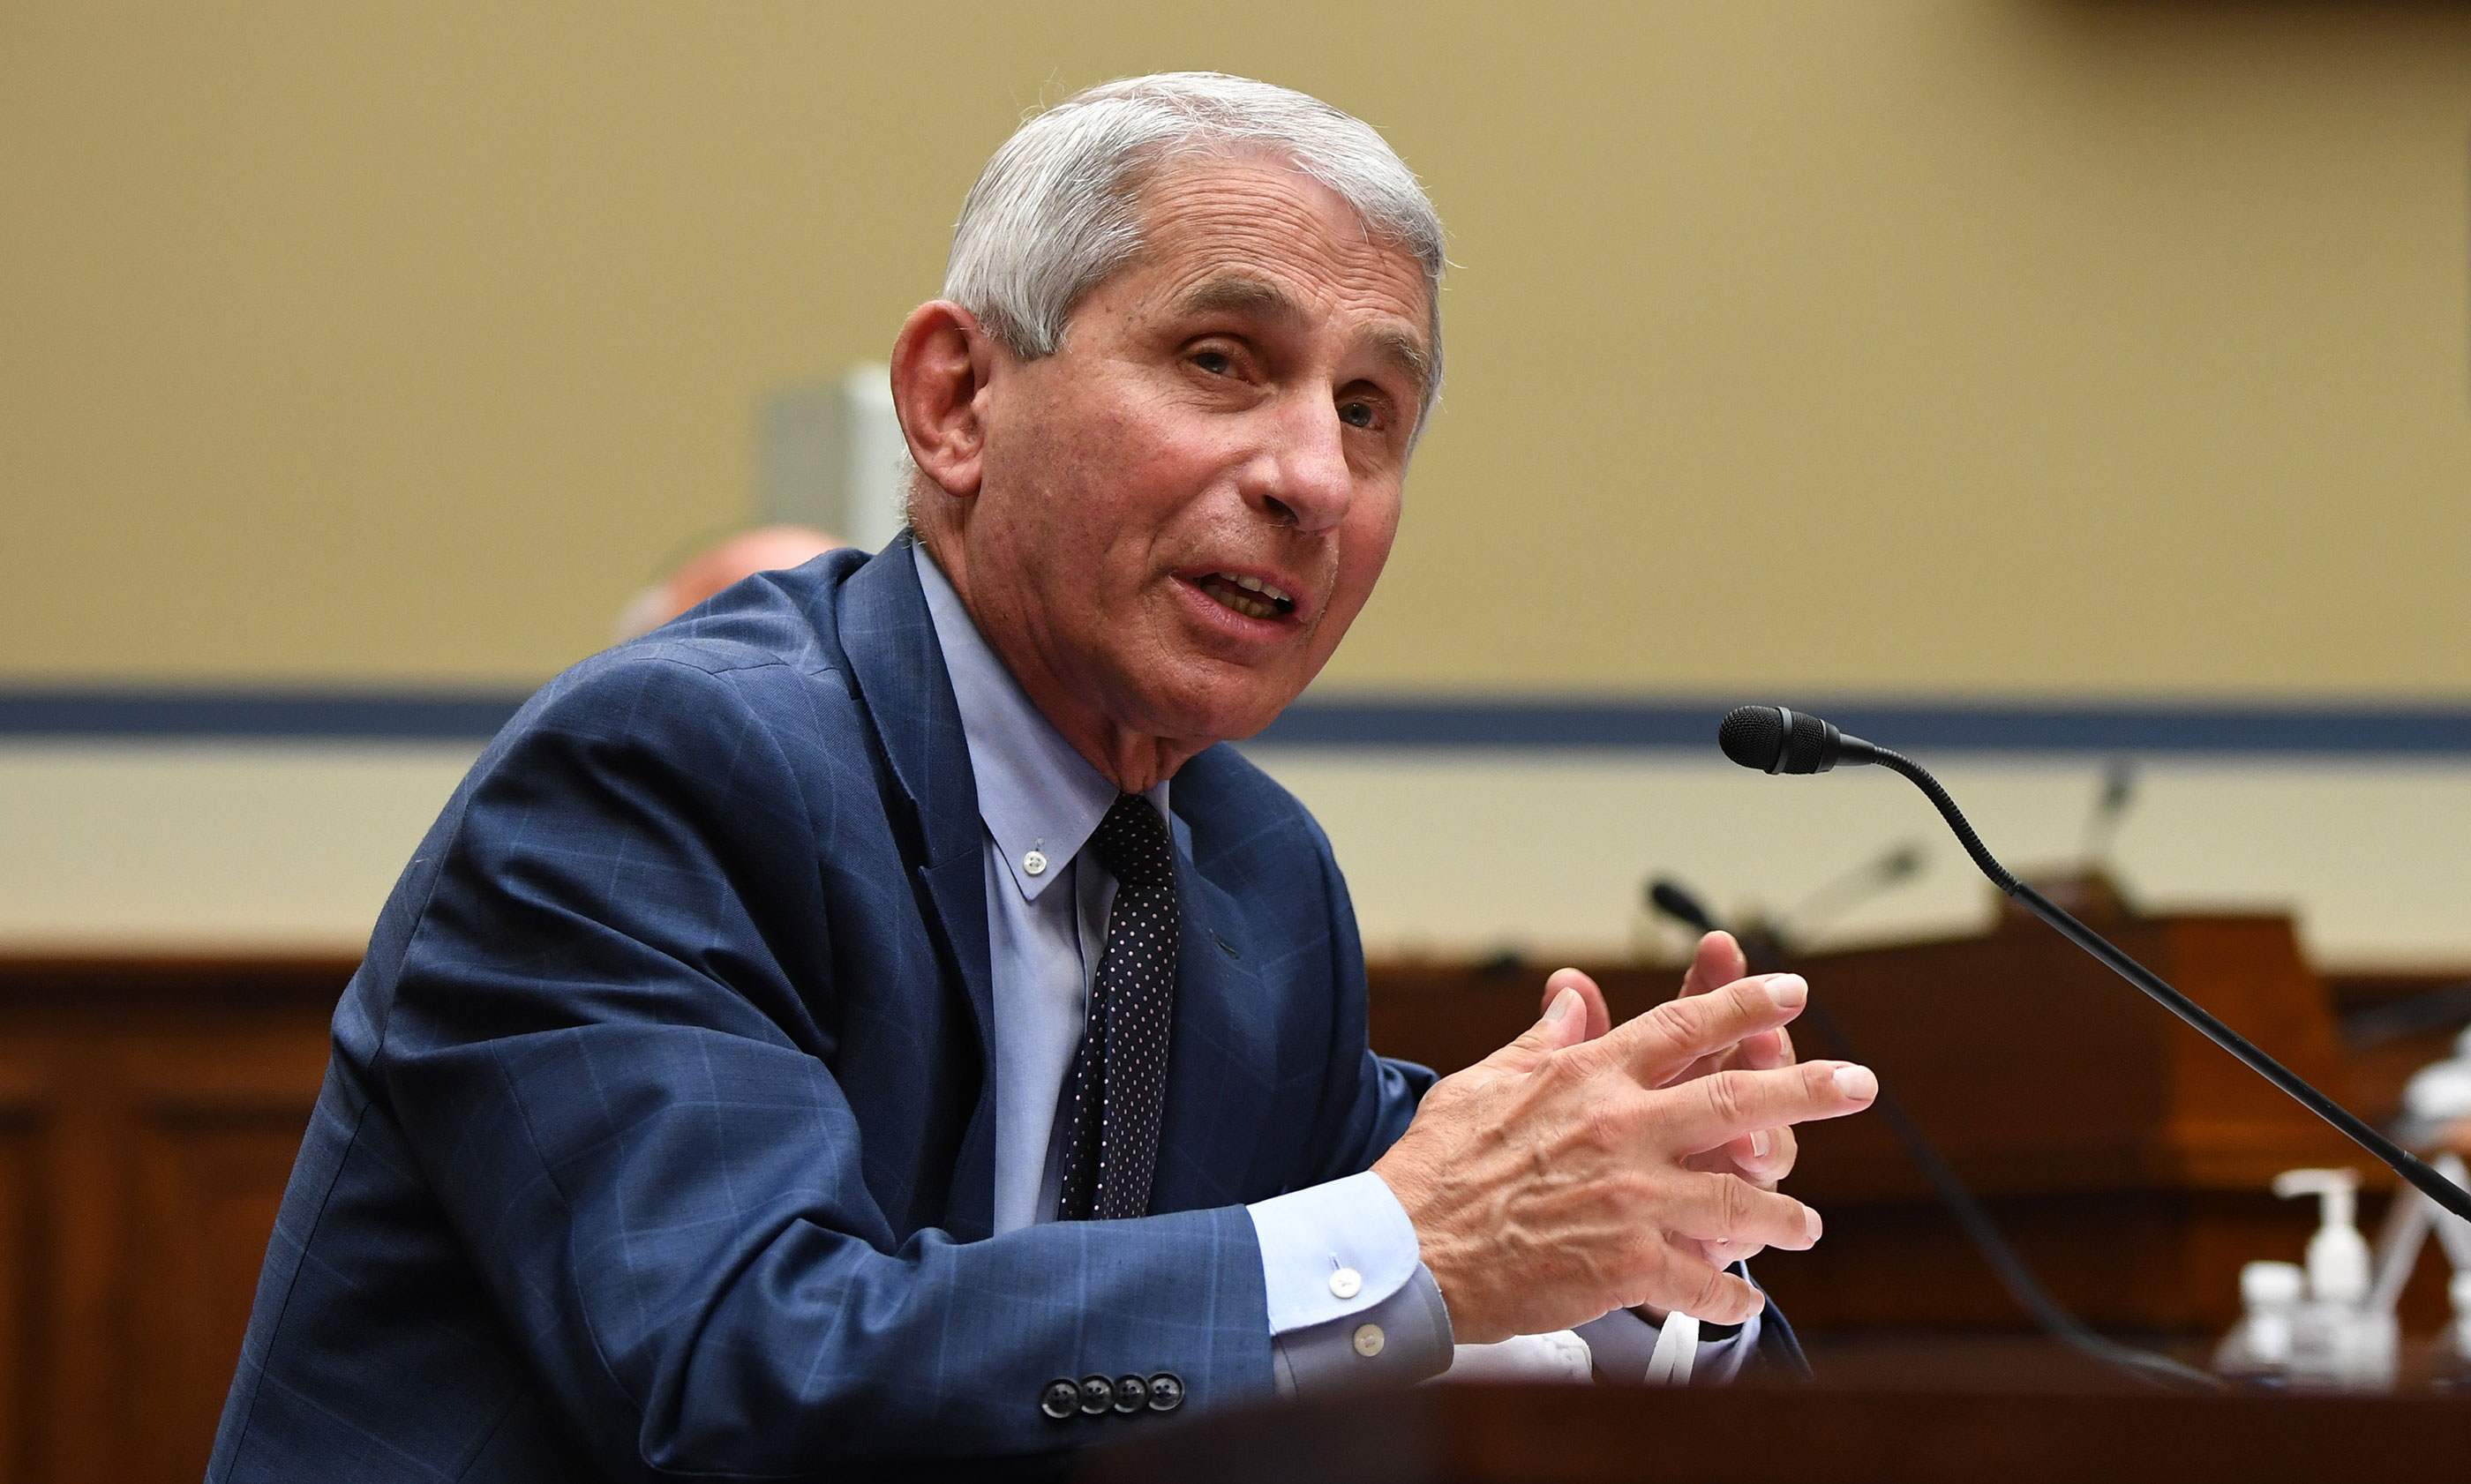 Dr. Anthony Fauci, director of the National Institute for Allergy and Infectious Diseases, testifies during a House Subcommittee on the Coronavirus Crisis hearing on July 31 in Washington, DC.